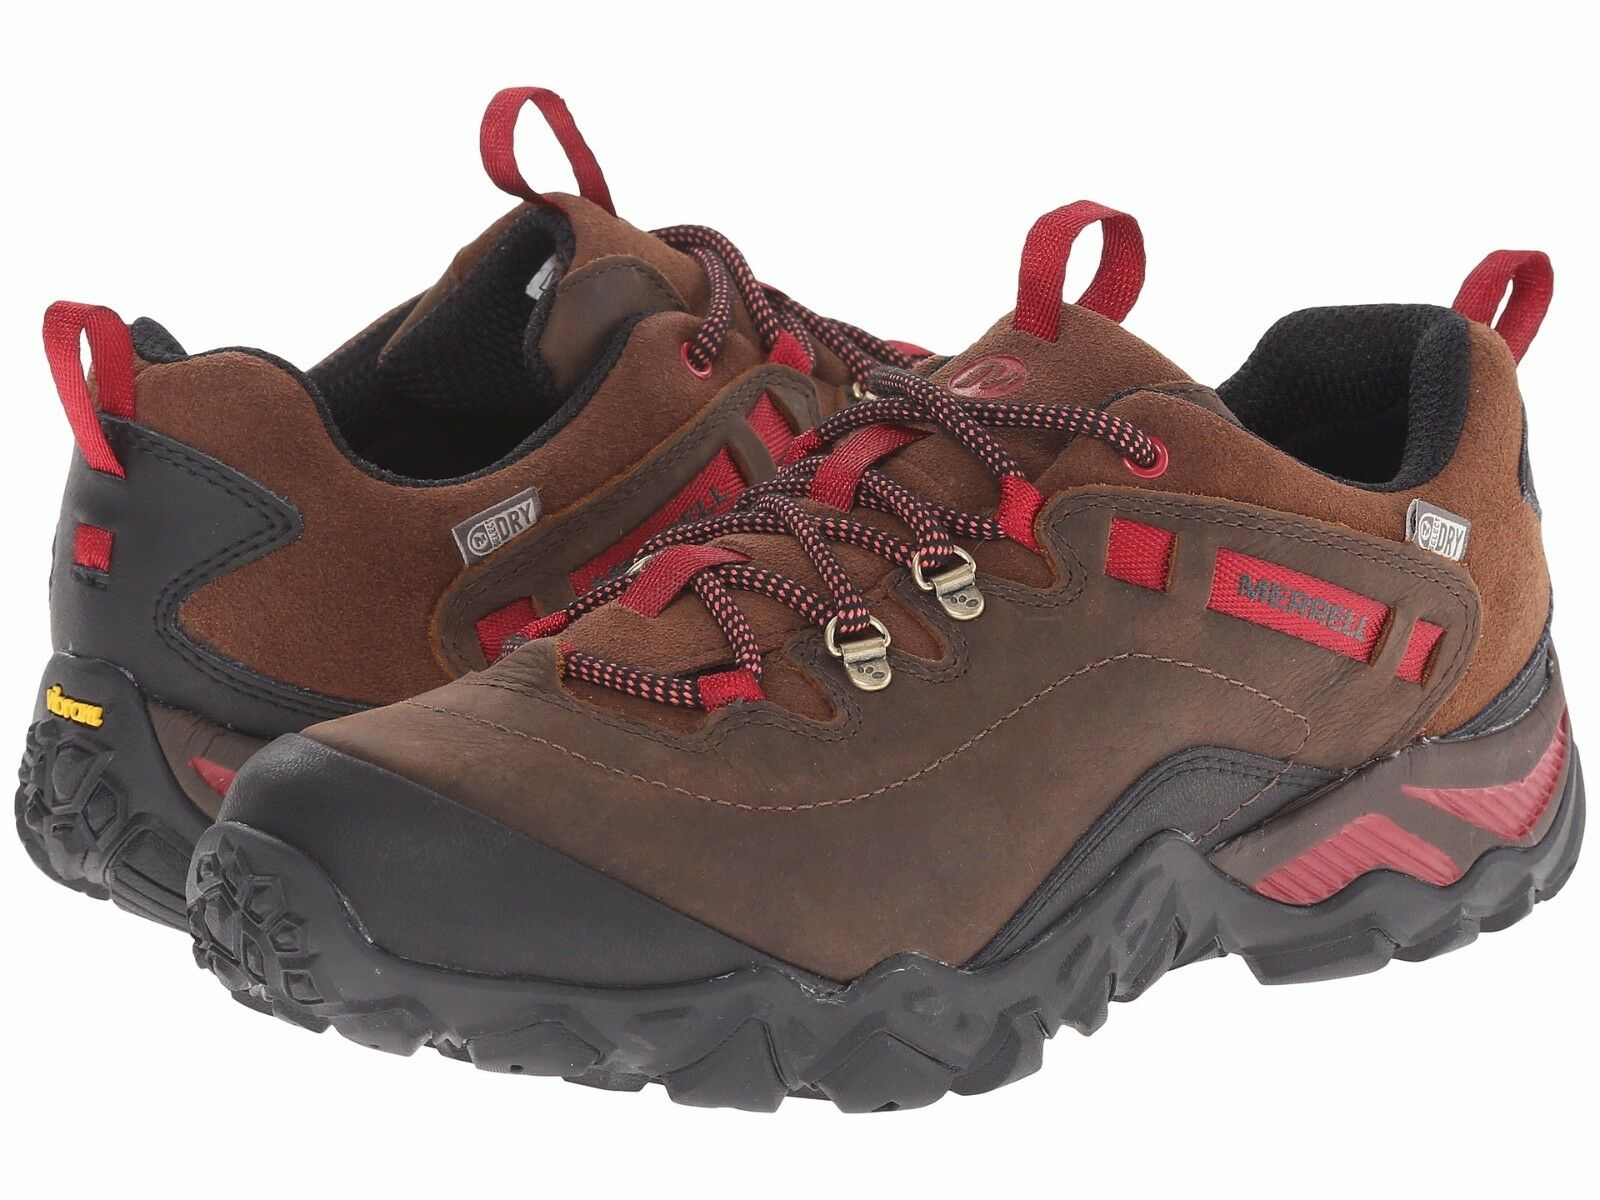 Merrell Women Chameleon Shift Traveler Waterproof shoes Hiking Sneaker Sz 9.5, 10